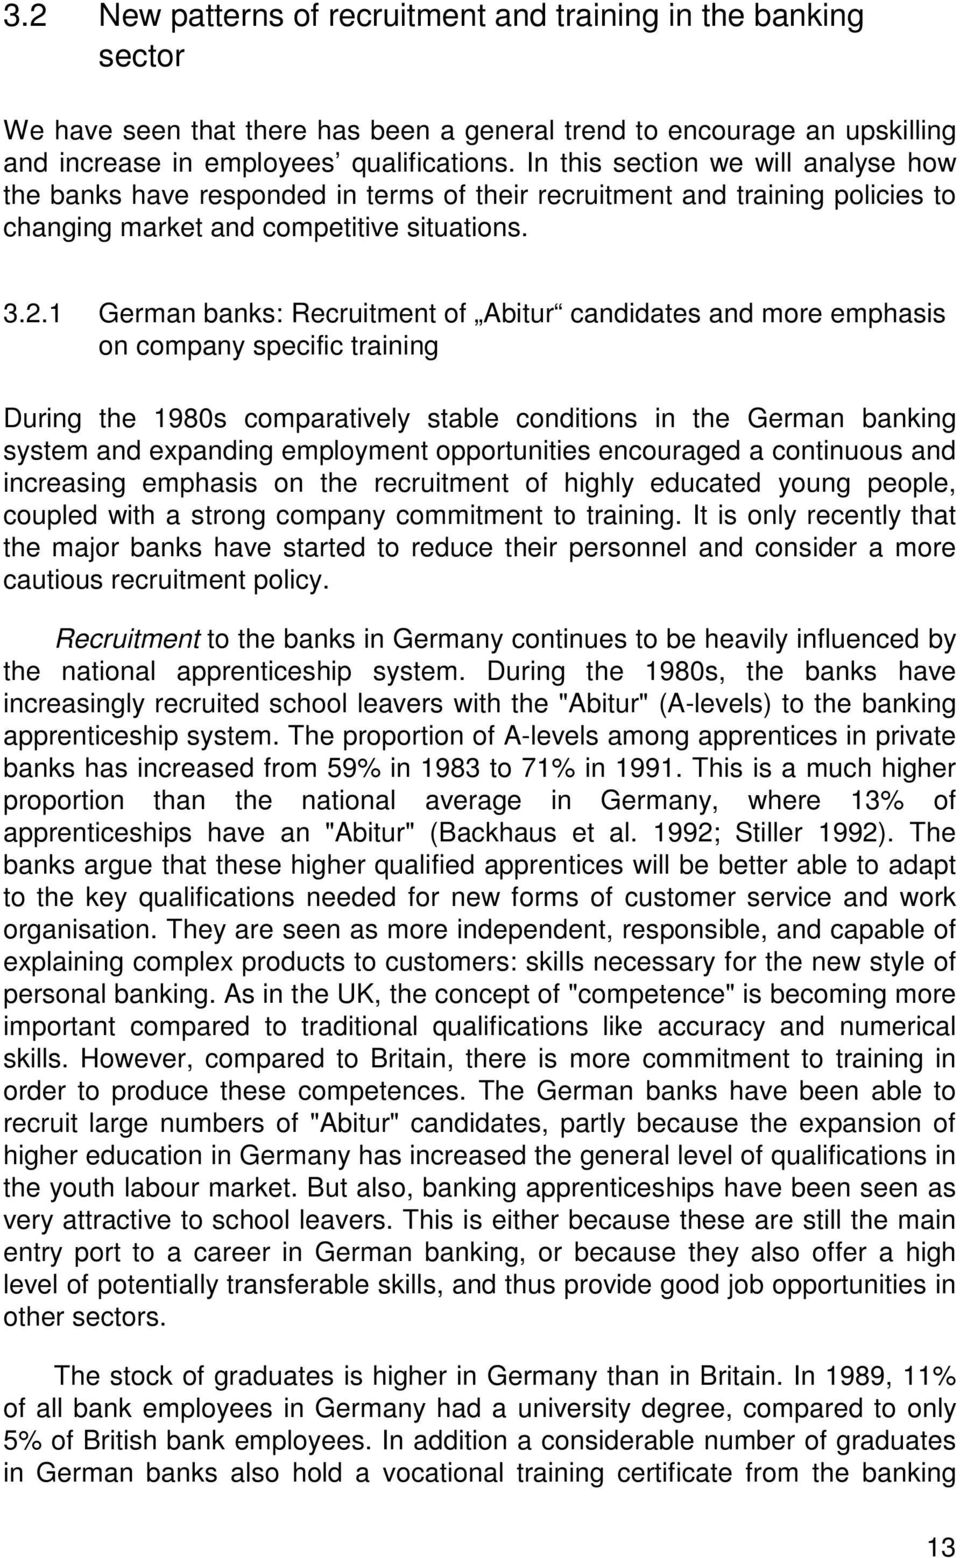 1 German banks: Recruitment of Abitur candidates and more emphasis on company specific training During the 1980s comparatively stable conditions in the German banking system and expanding employment